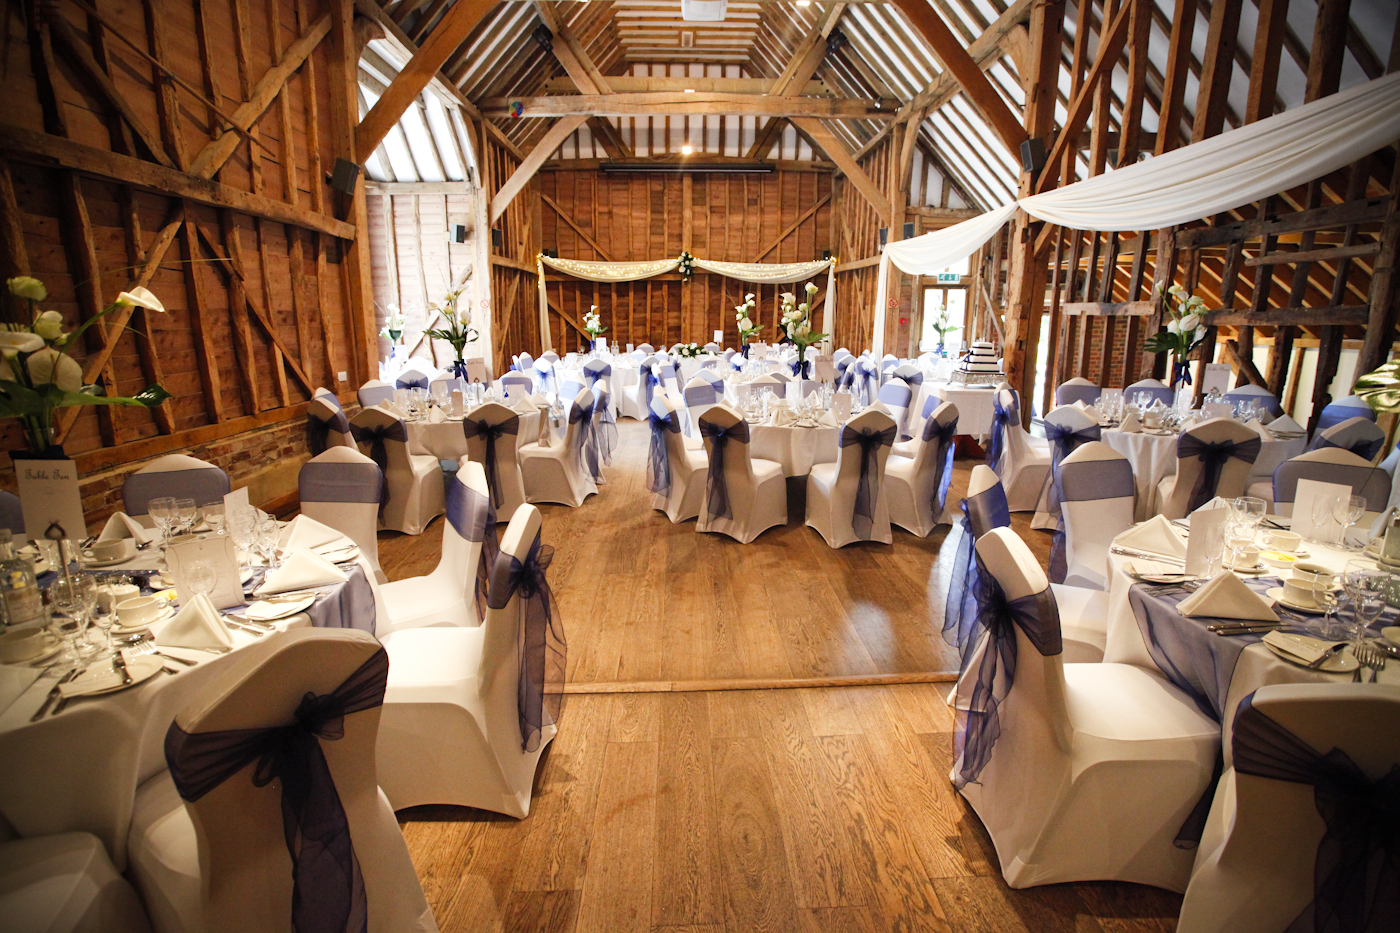 Tewin Bury Farm Hotel Wedding Ceremony And Reception Venues In Nr